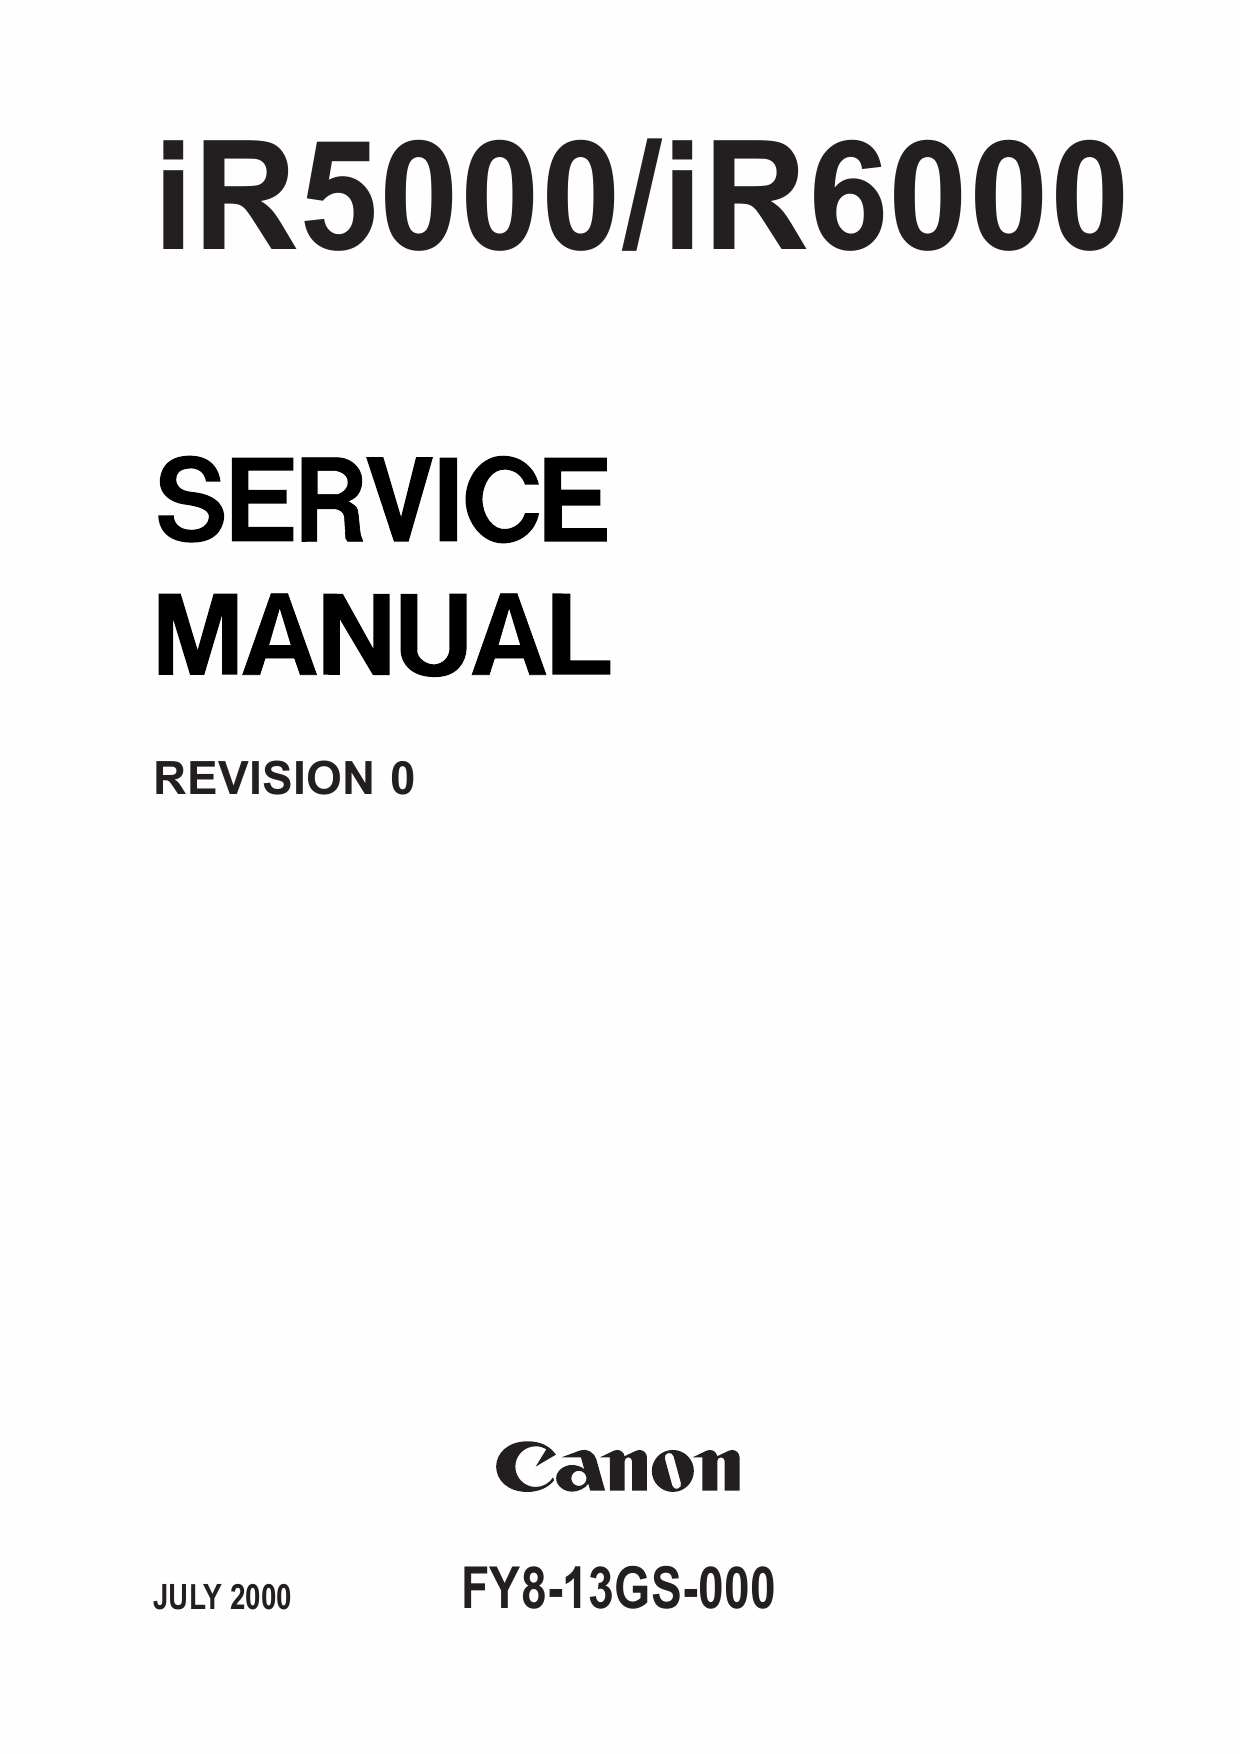 Canon imageRUNNER iR-5000 6000 Parts and Service Manual-1